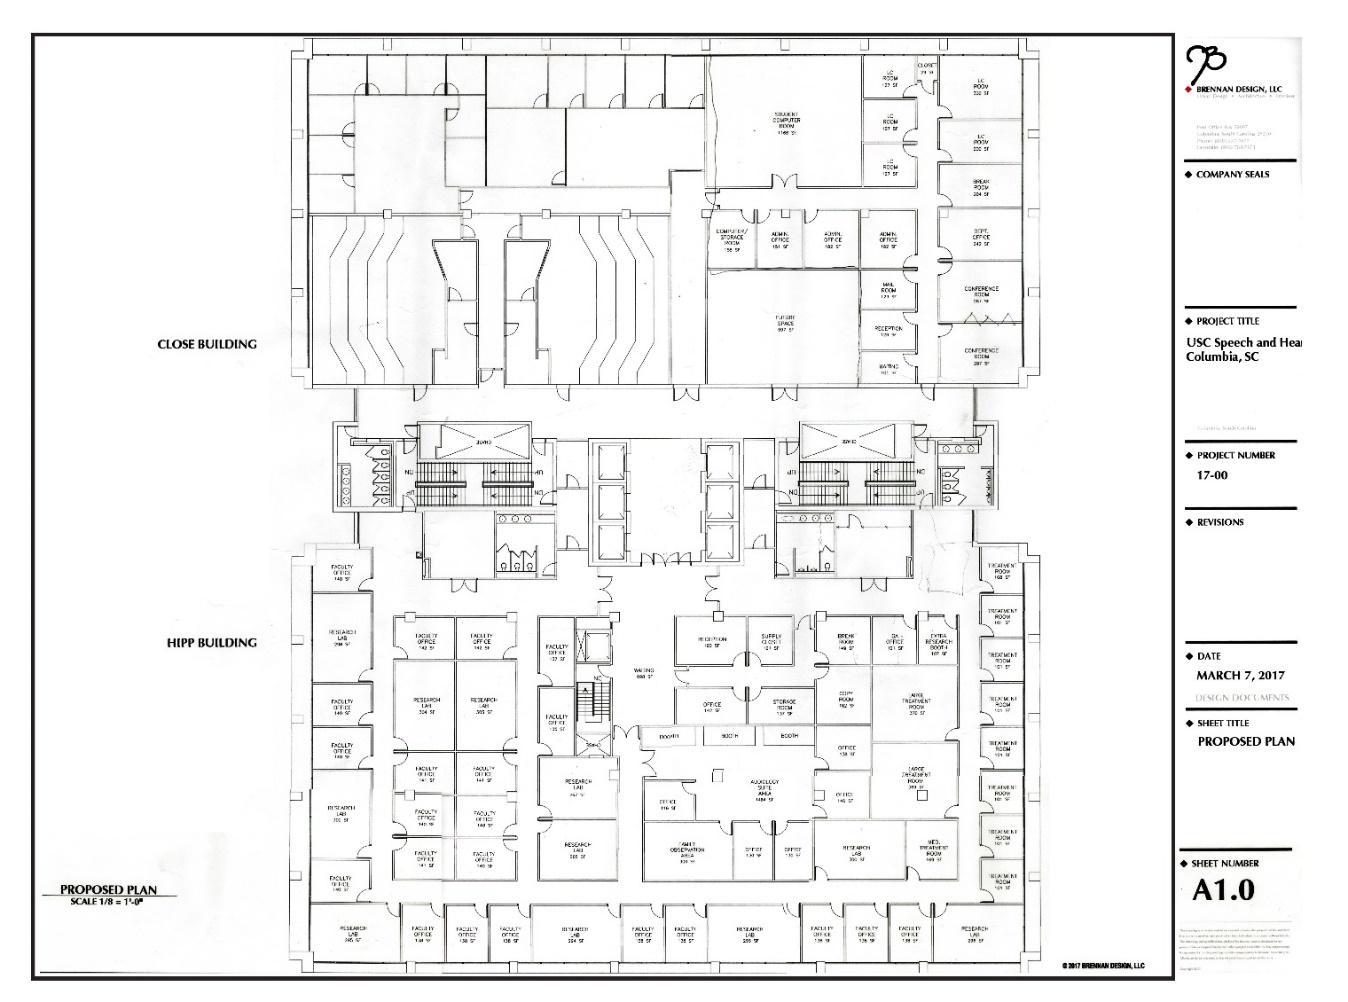 Blue Print of the new space for the COMD department and Montgomery Clinic in the Close-Hipp building.